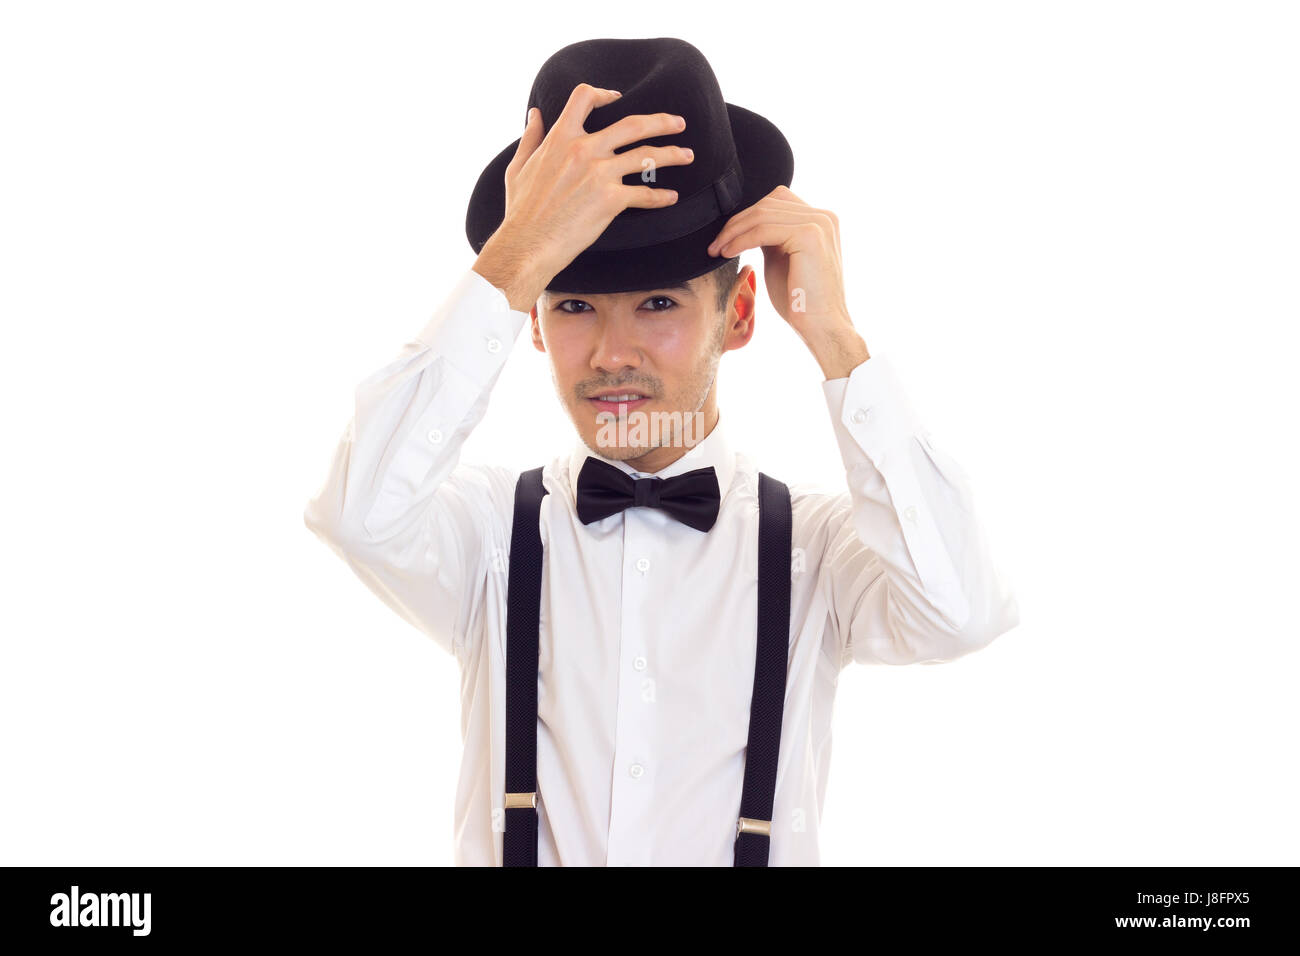 35960c8d9609 Elegant young man in white shirt with black bow-tie, suspenders and hat on